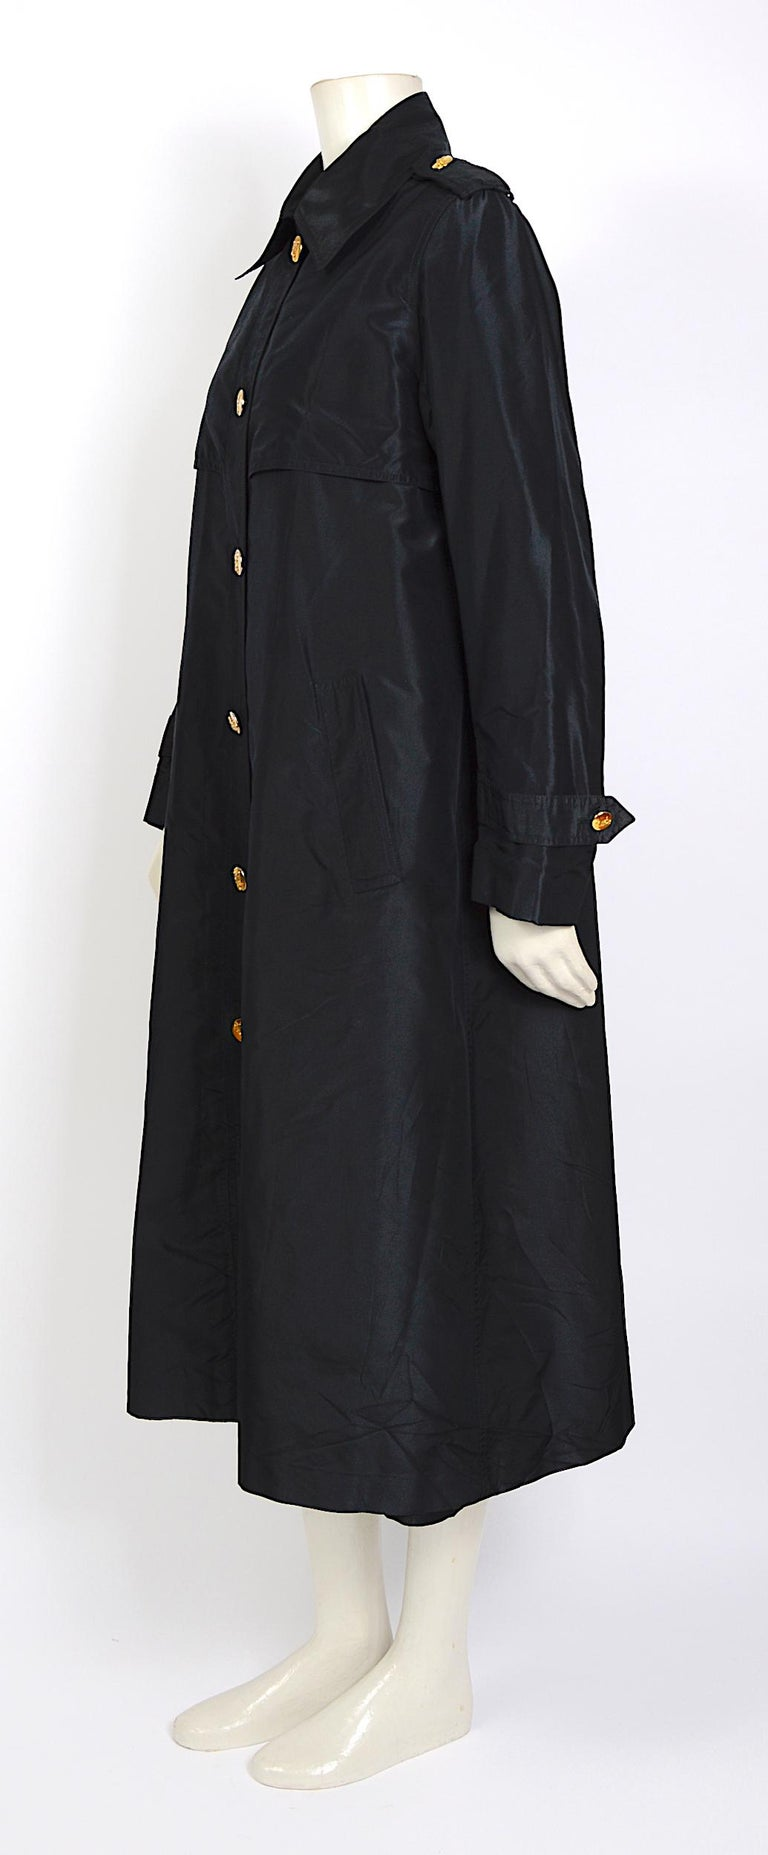 Celine vintage elegant cool A-Line style black crispy taffeta silk coat with gold signature buttons.  The coat is in fabulous condition but you will notice some light fading on the gold buttons - French size 38. Please use the given measurements for